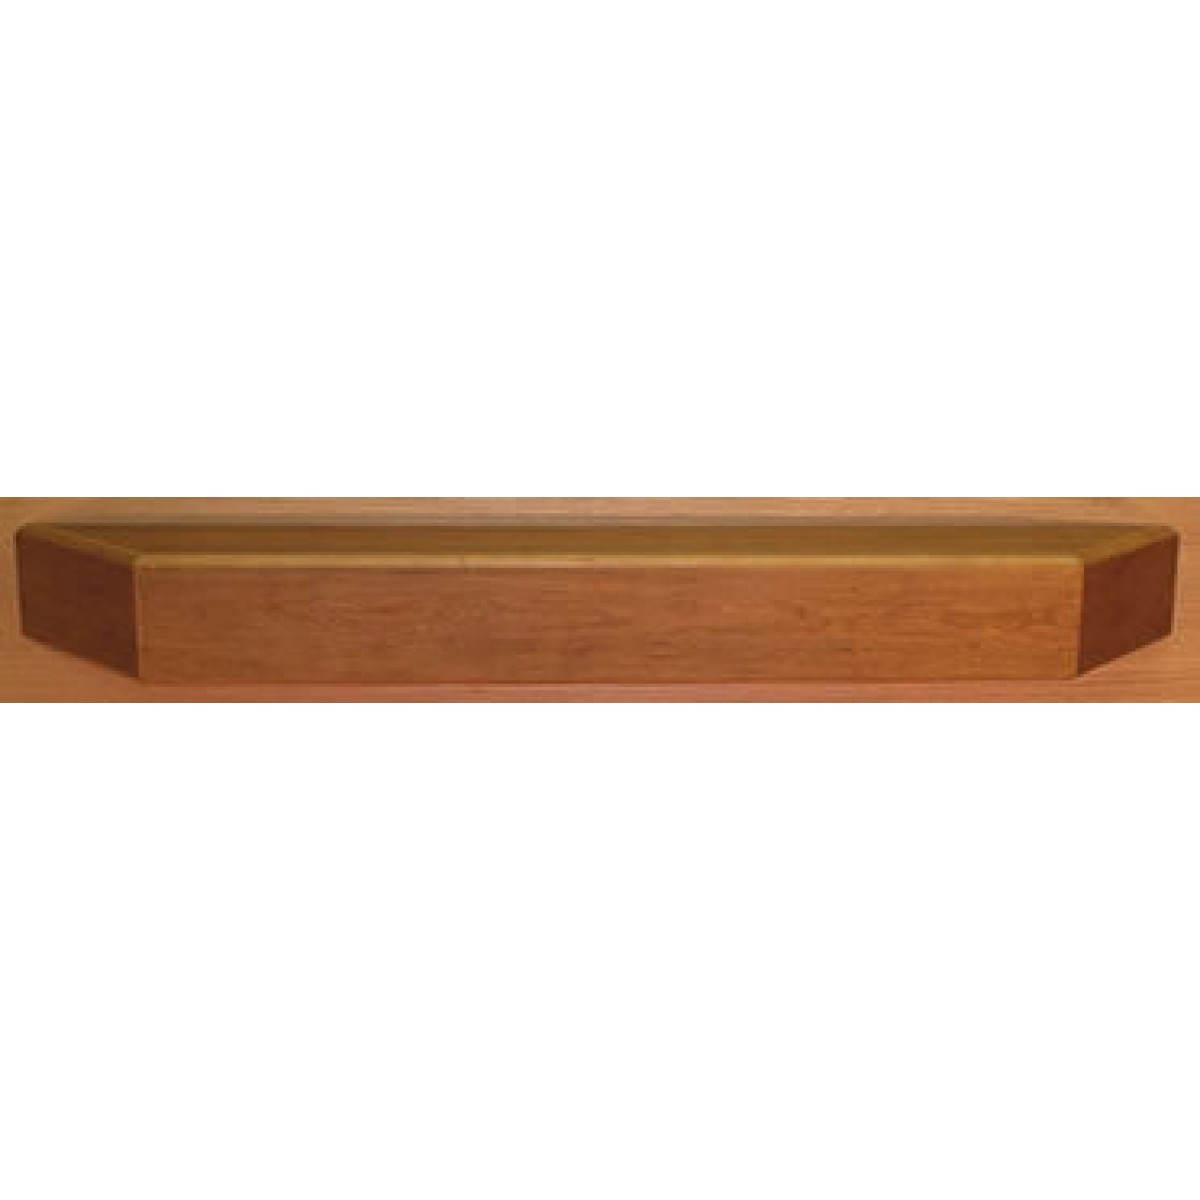 Fireplace front contemporary clear coat poplar mantel shelf at - Beneficial contemporary fireplace mantel shelves ...